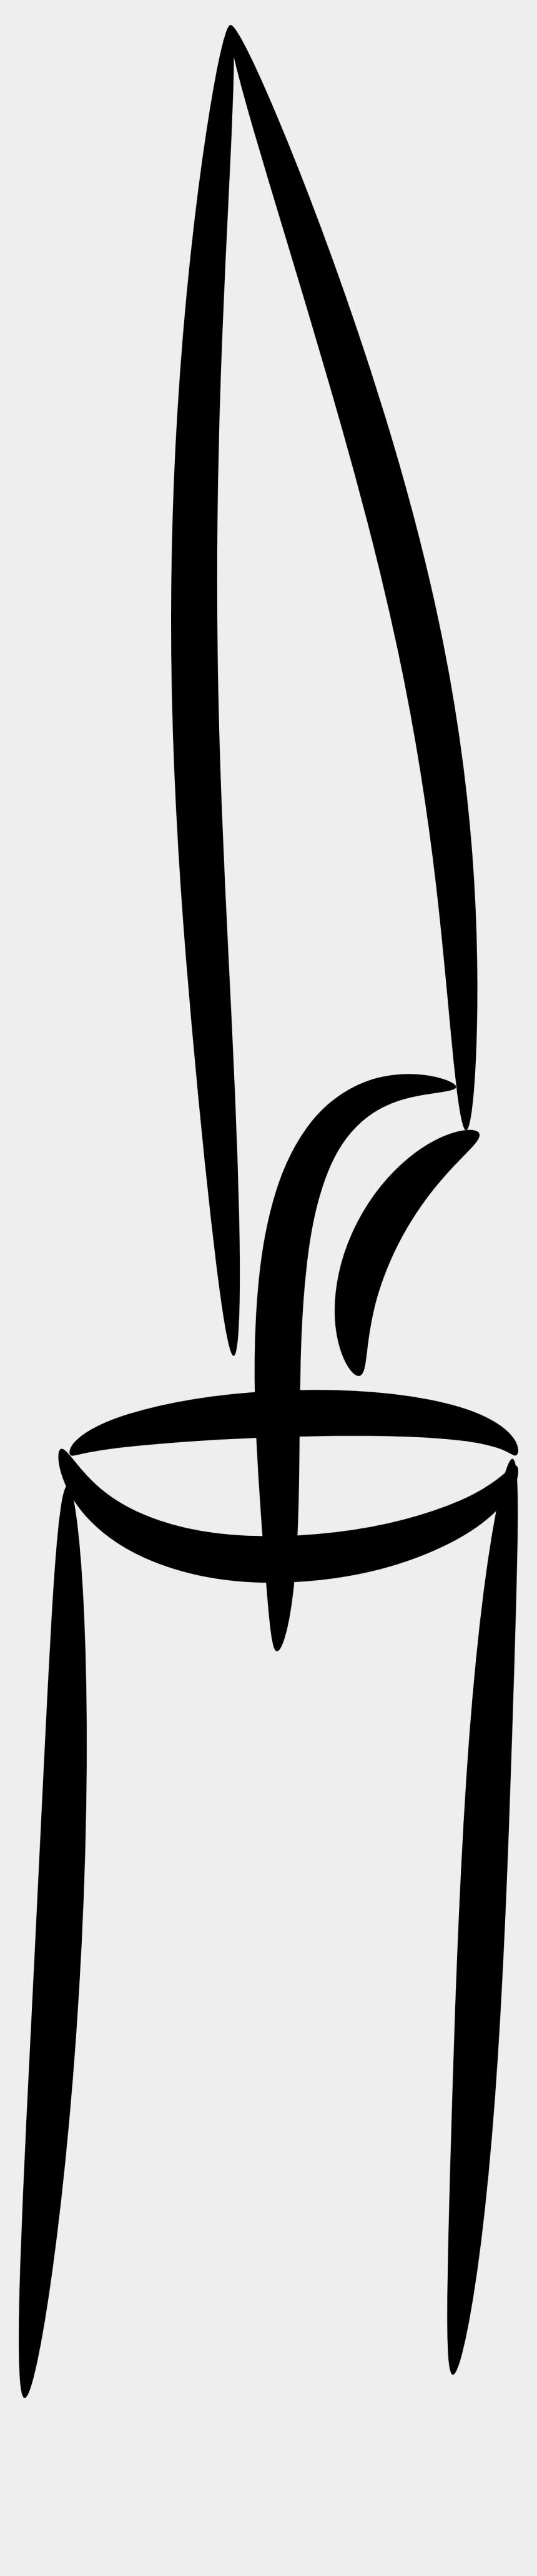 flame clip art, Cartoons - Candle Black And White Candle Flame Clipart Black And - Black And White Candle Clipart